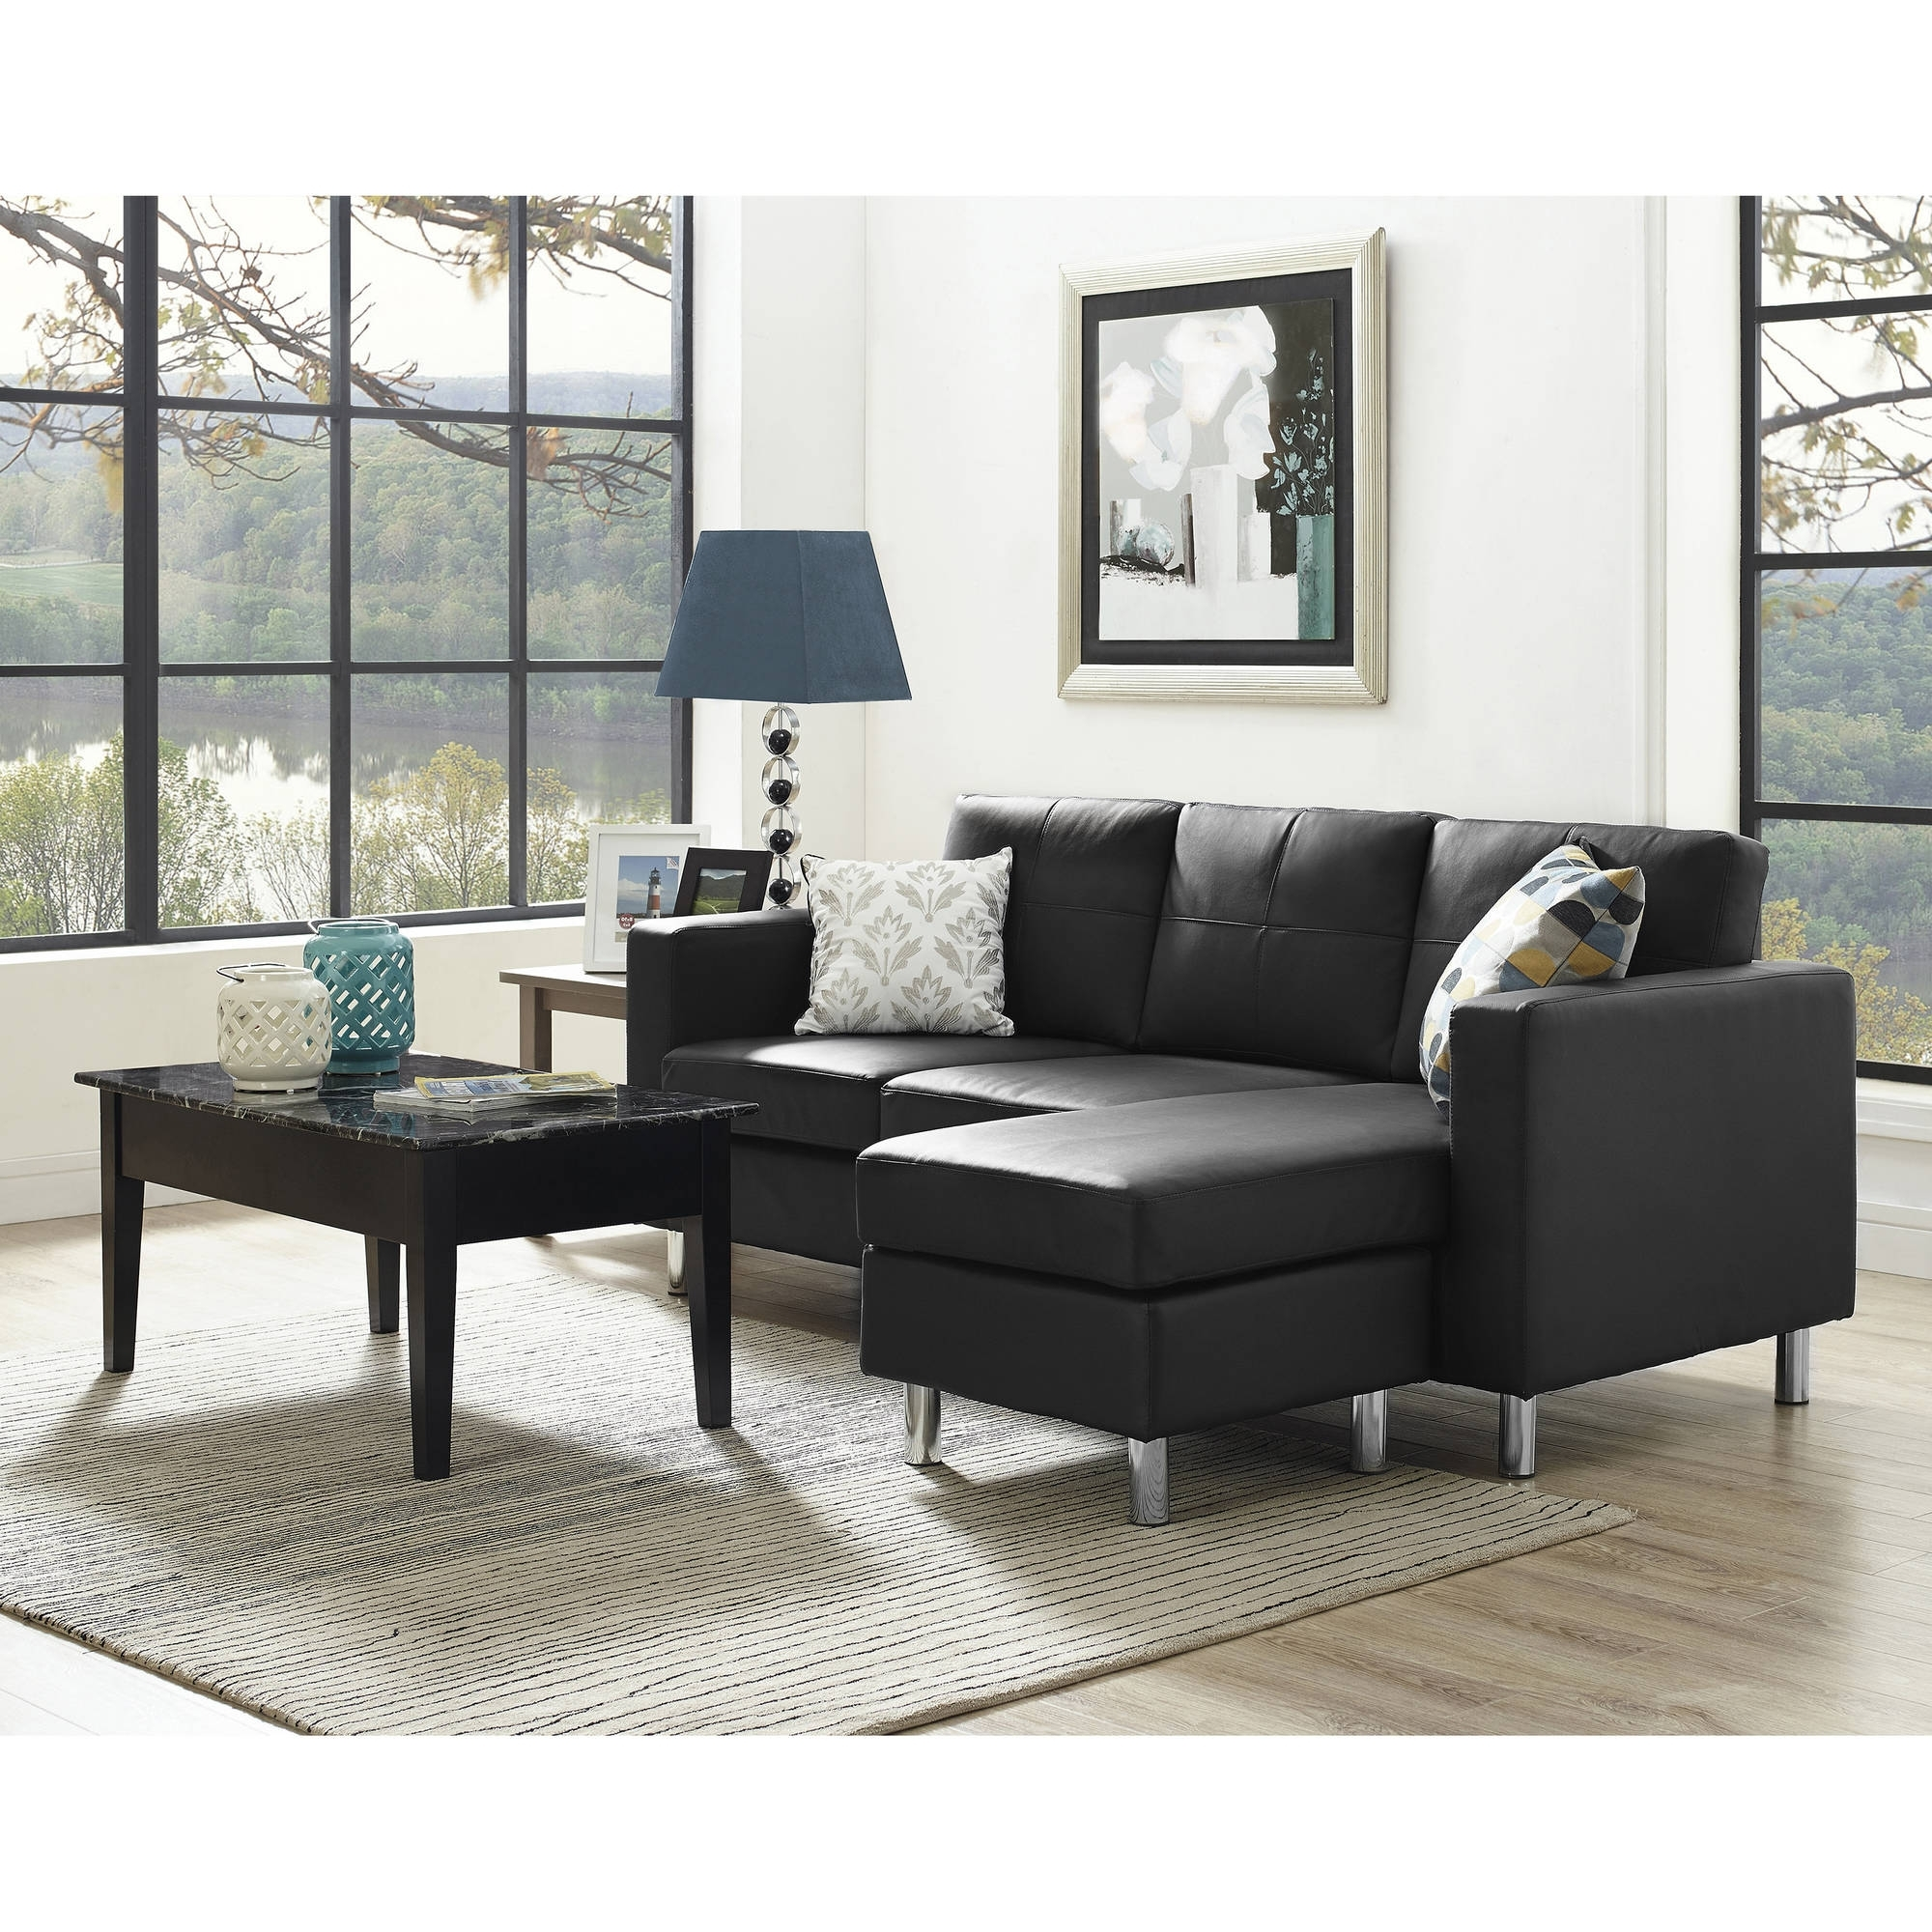 Canada Sectional Sofas For Small Spaces Inside Most Recent Tips On Buying And Placing A Sectional Sofa For Small Spaces (View 5 of 20)